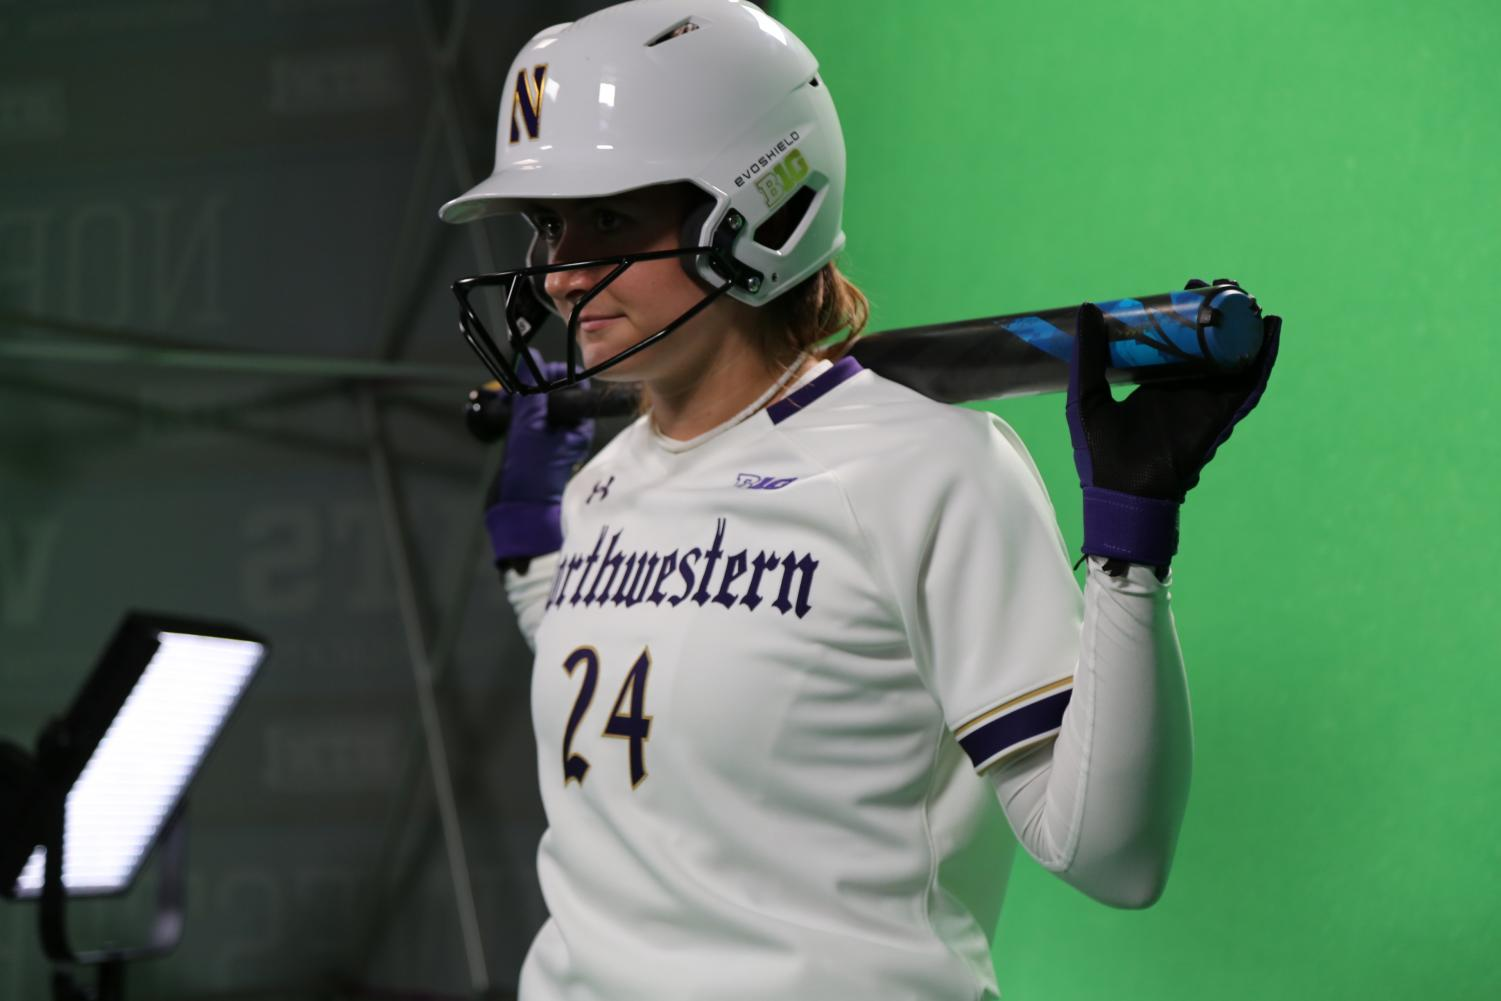 Danielle Williams debuts Northwestern's new Gothic Ice uniforms. The Wildcat softball and lacrosse teams will wear these new Under Armour uniforms in their games on Friday.